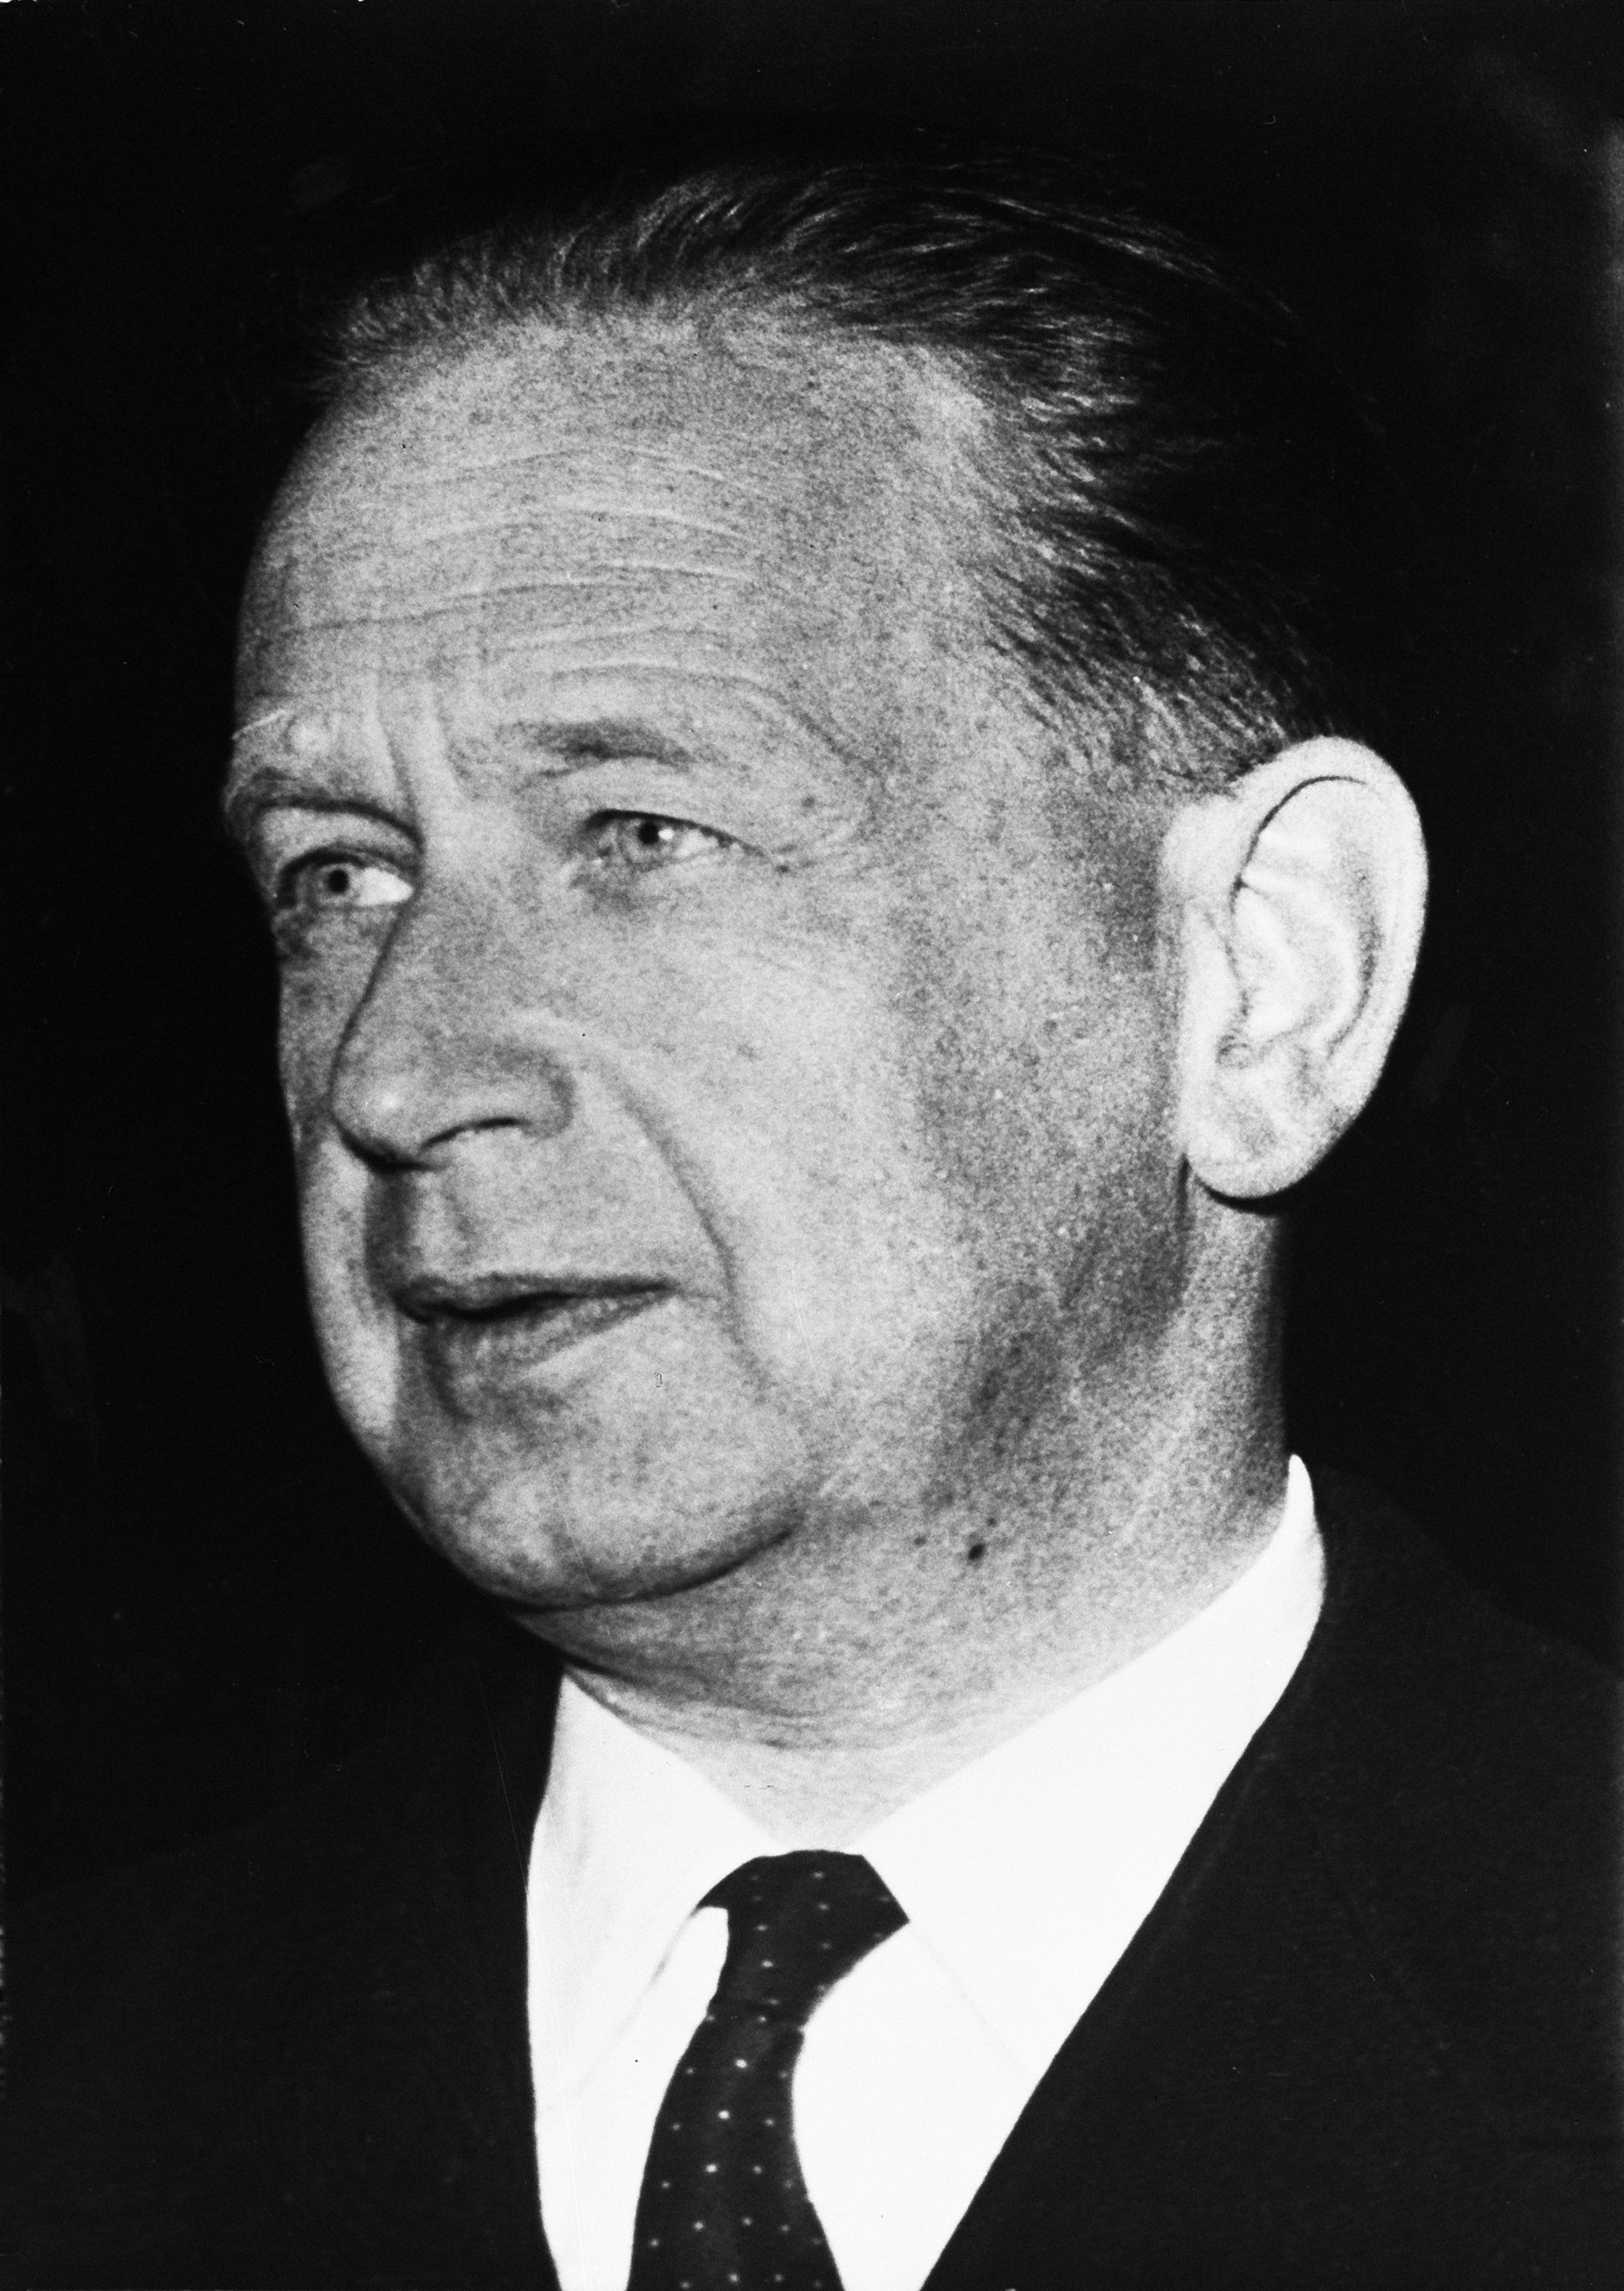 Hammarskjöld on 18 September 1961, the day he died in a plane crash